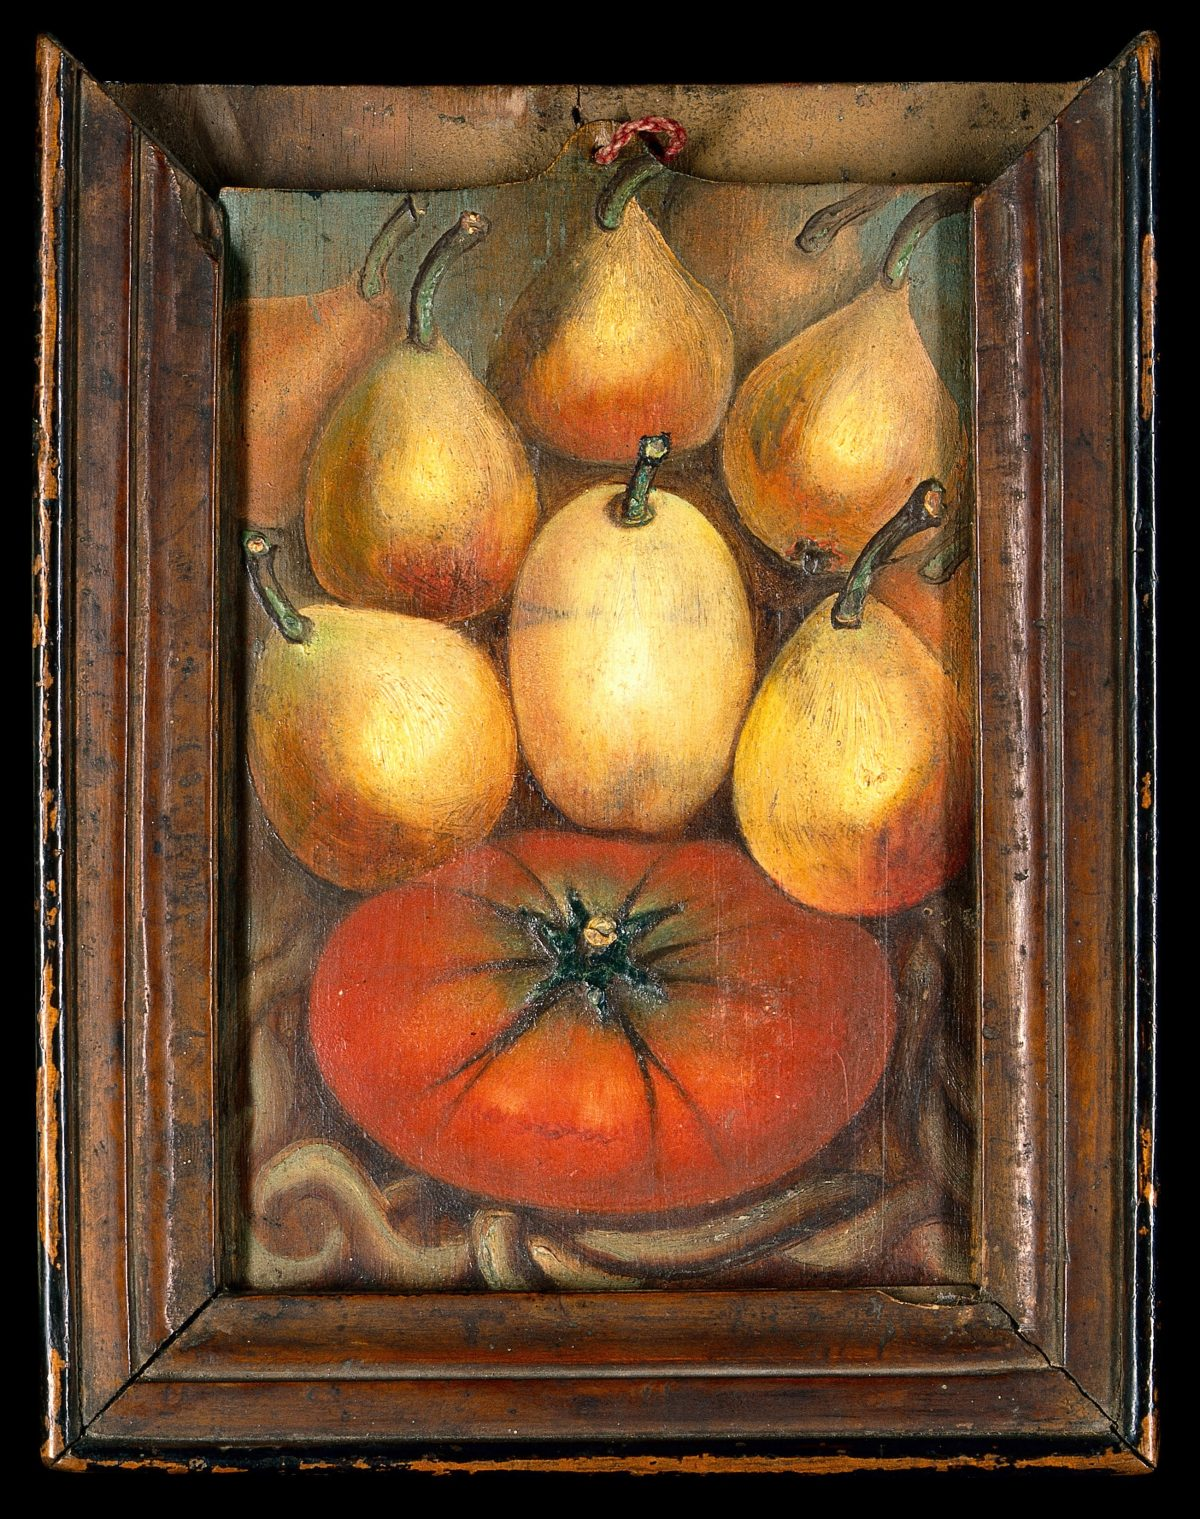 Figs and a tomato. Oil painting by Summonte